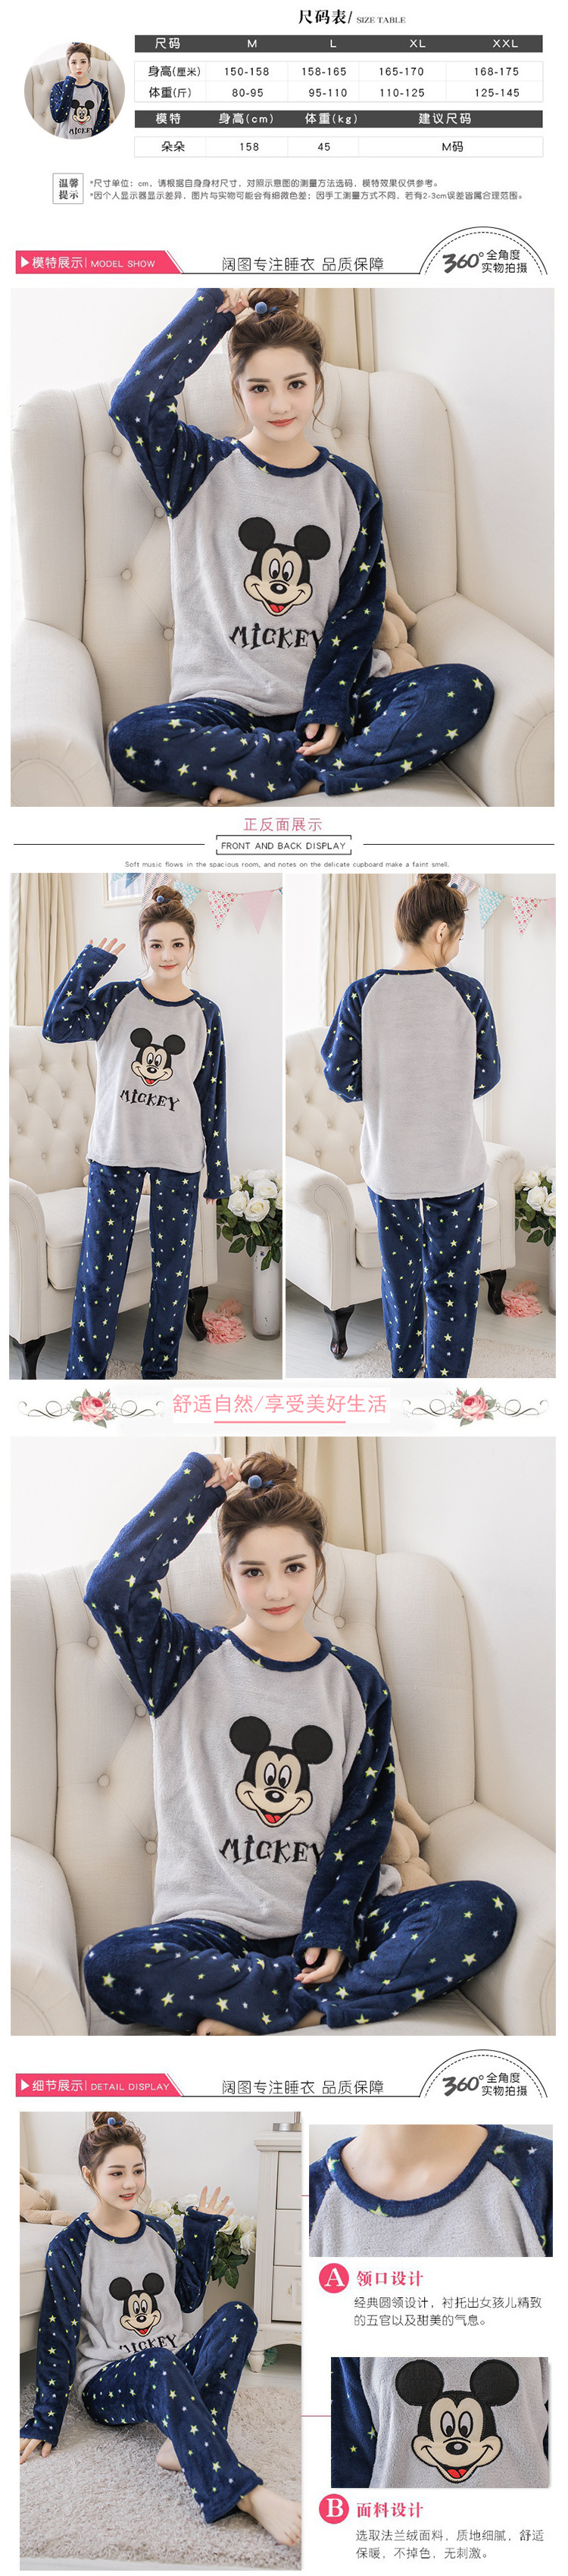 High Quality Women Pajama Sets Winter Soft Thicken Cute Cartoon Flannel Sleepwear 2 pcs/Set Tops + Warm Pants Home Clothes Mujer 114